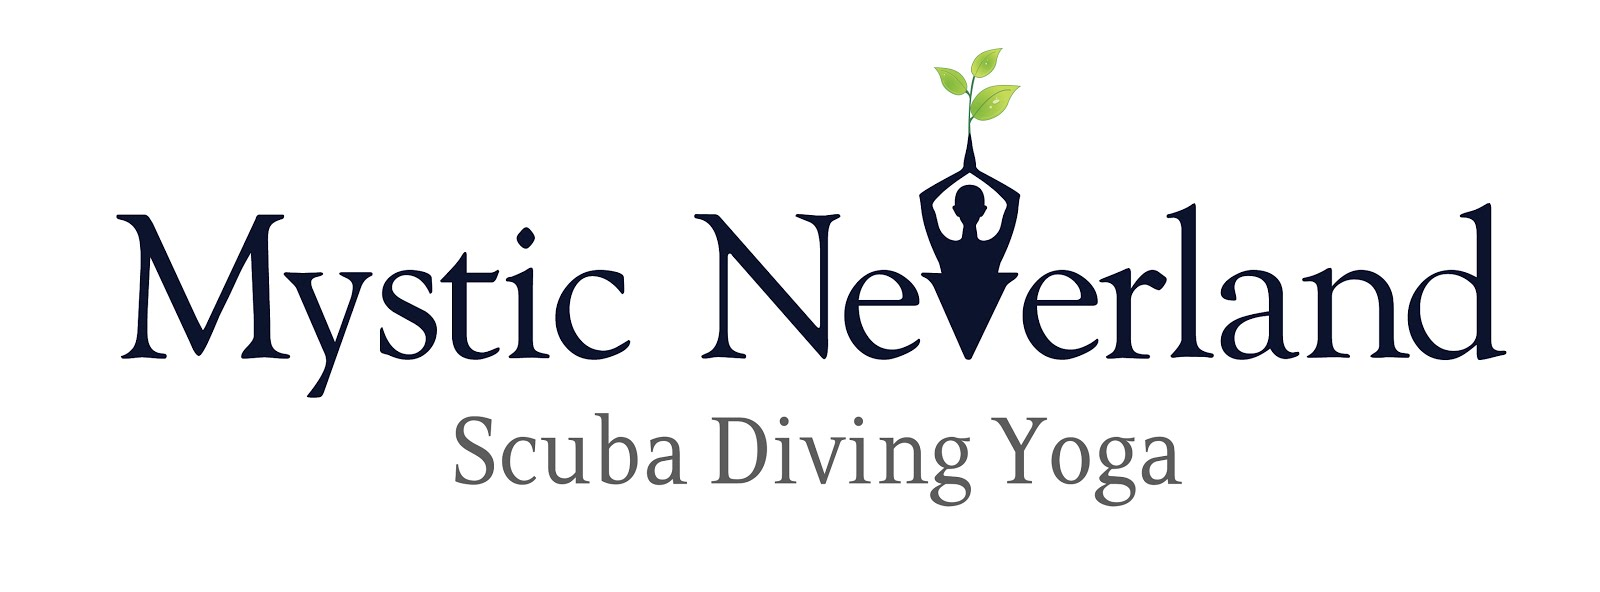 Mystic Neverland Scuba Diving